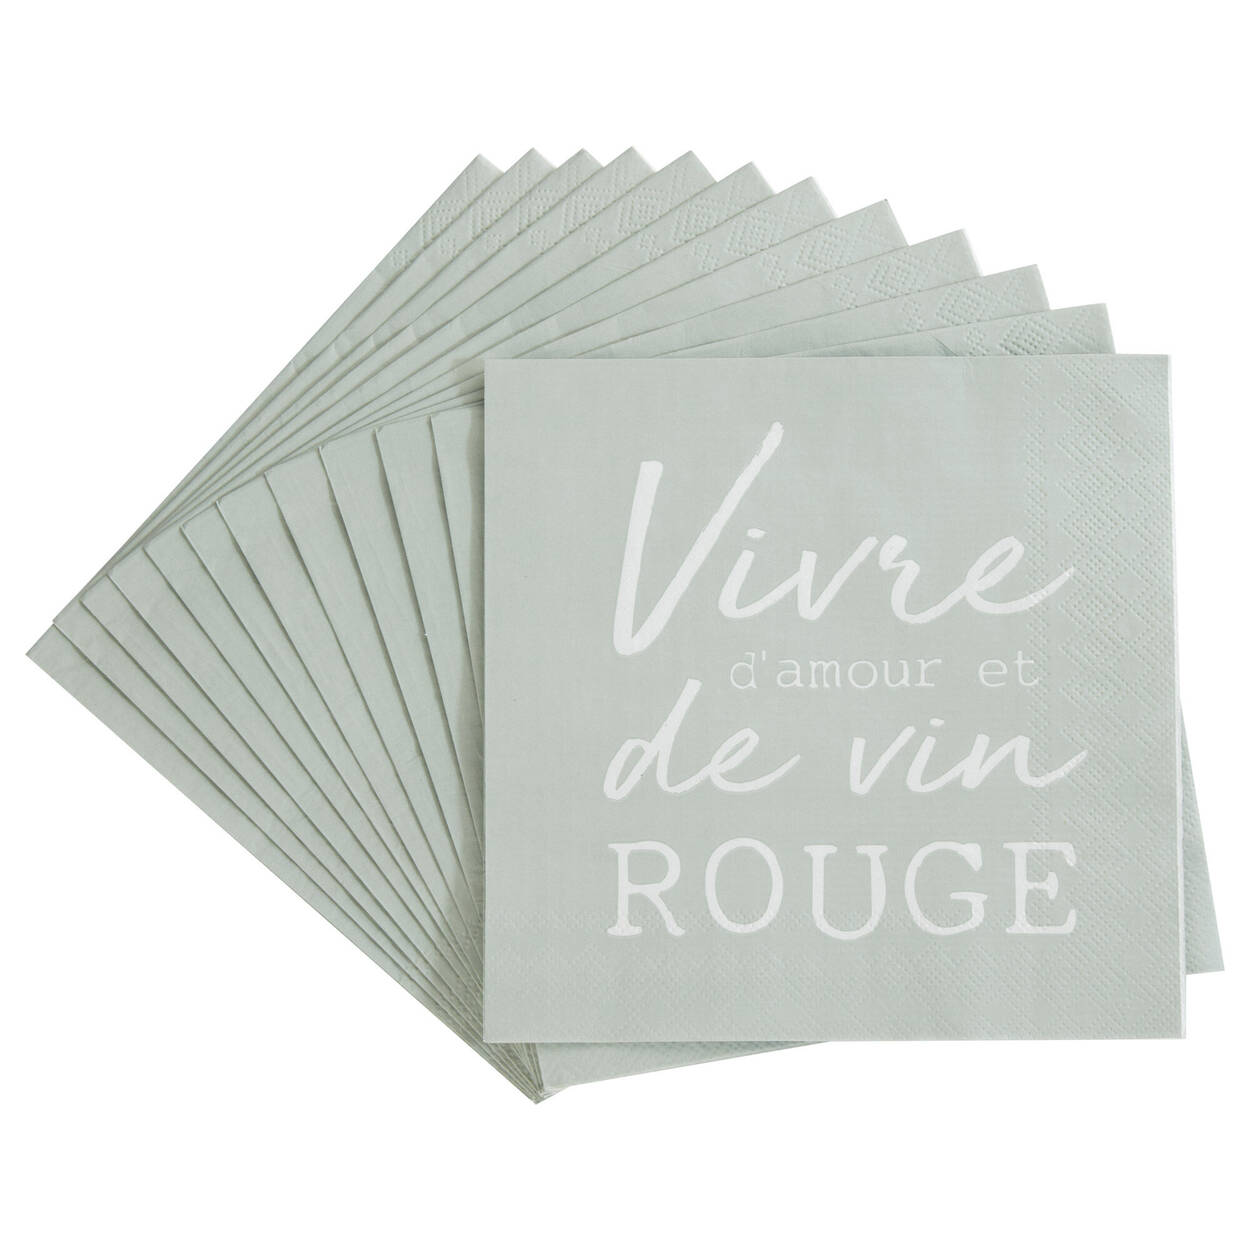 Pack of 20 Vivre Paper Napkins